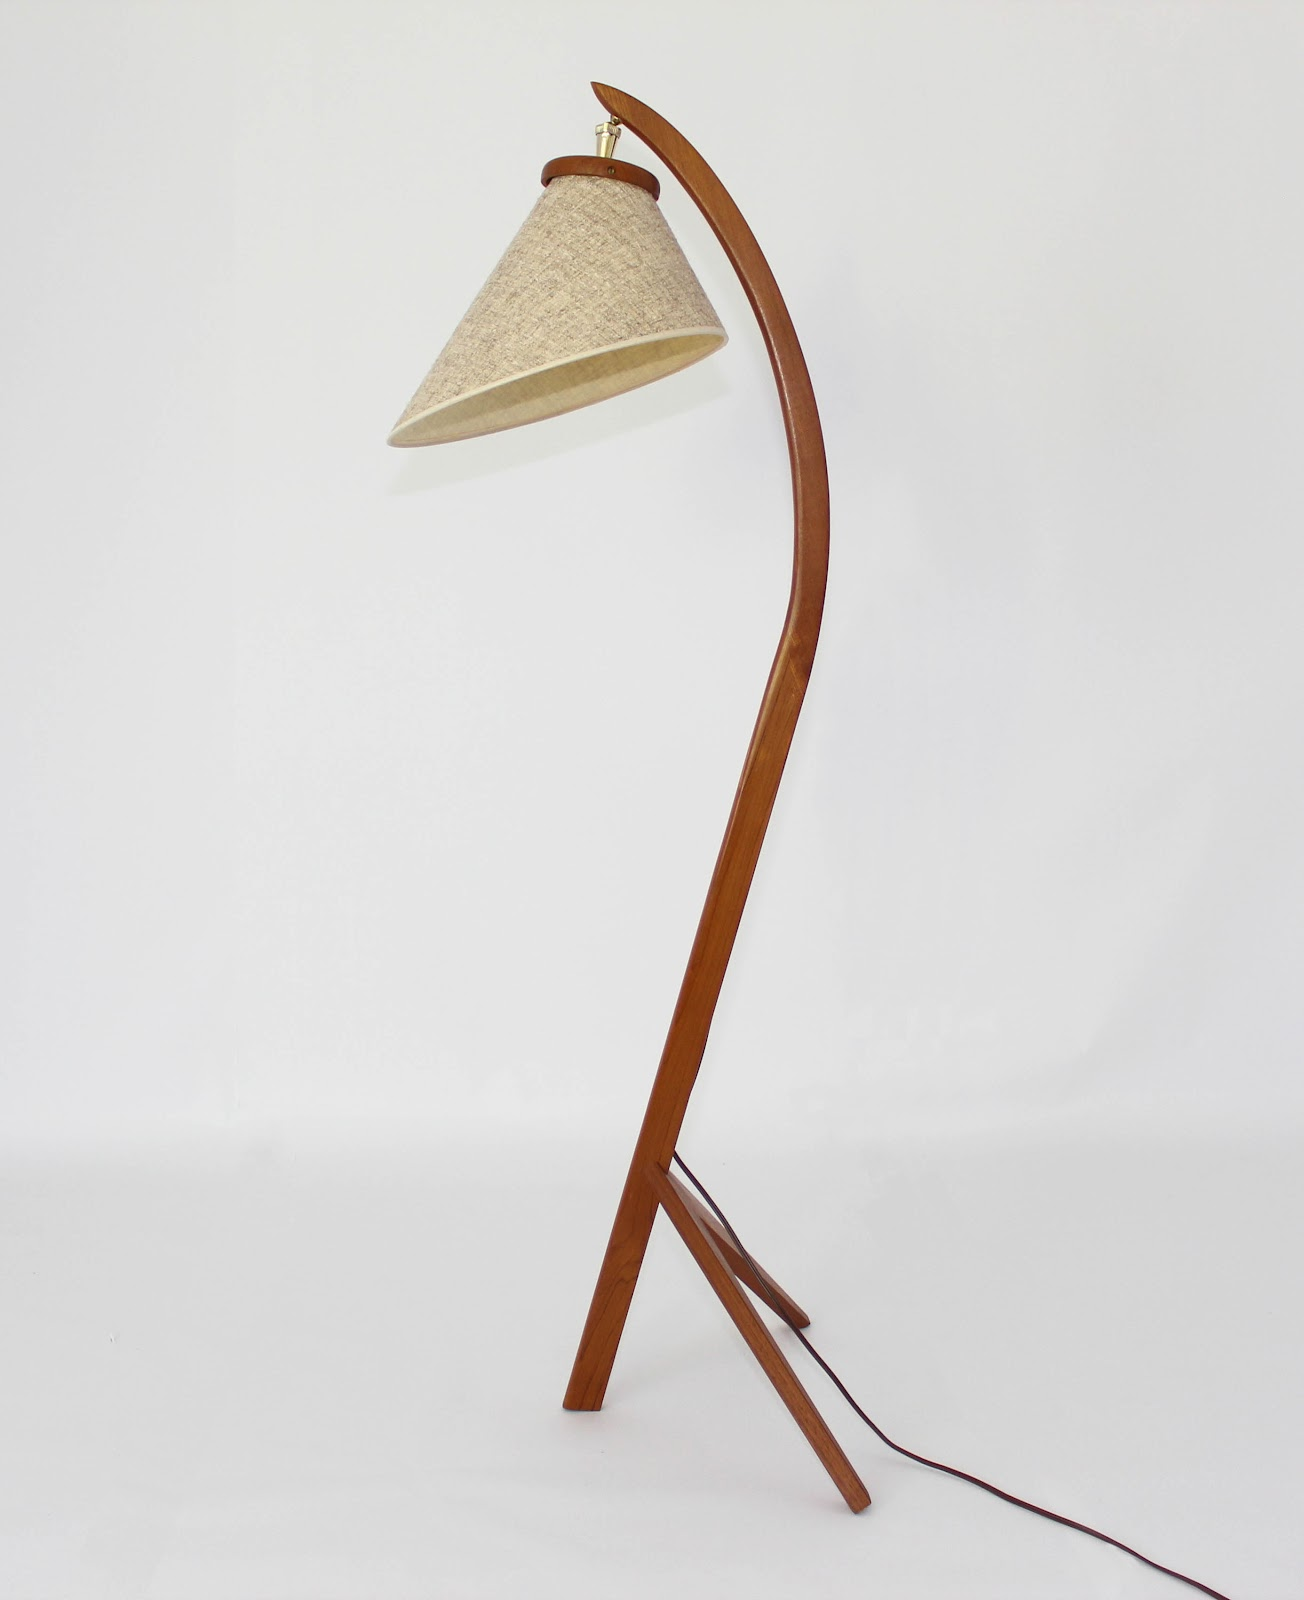 Mansion decor mid century danish teak bow floor lamp from the 60s here is the famous danish bow lamp mid century modern made in denmark solid teak very unique extremely hard to find this will be the aloadofball Images